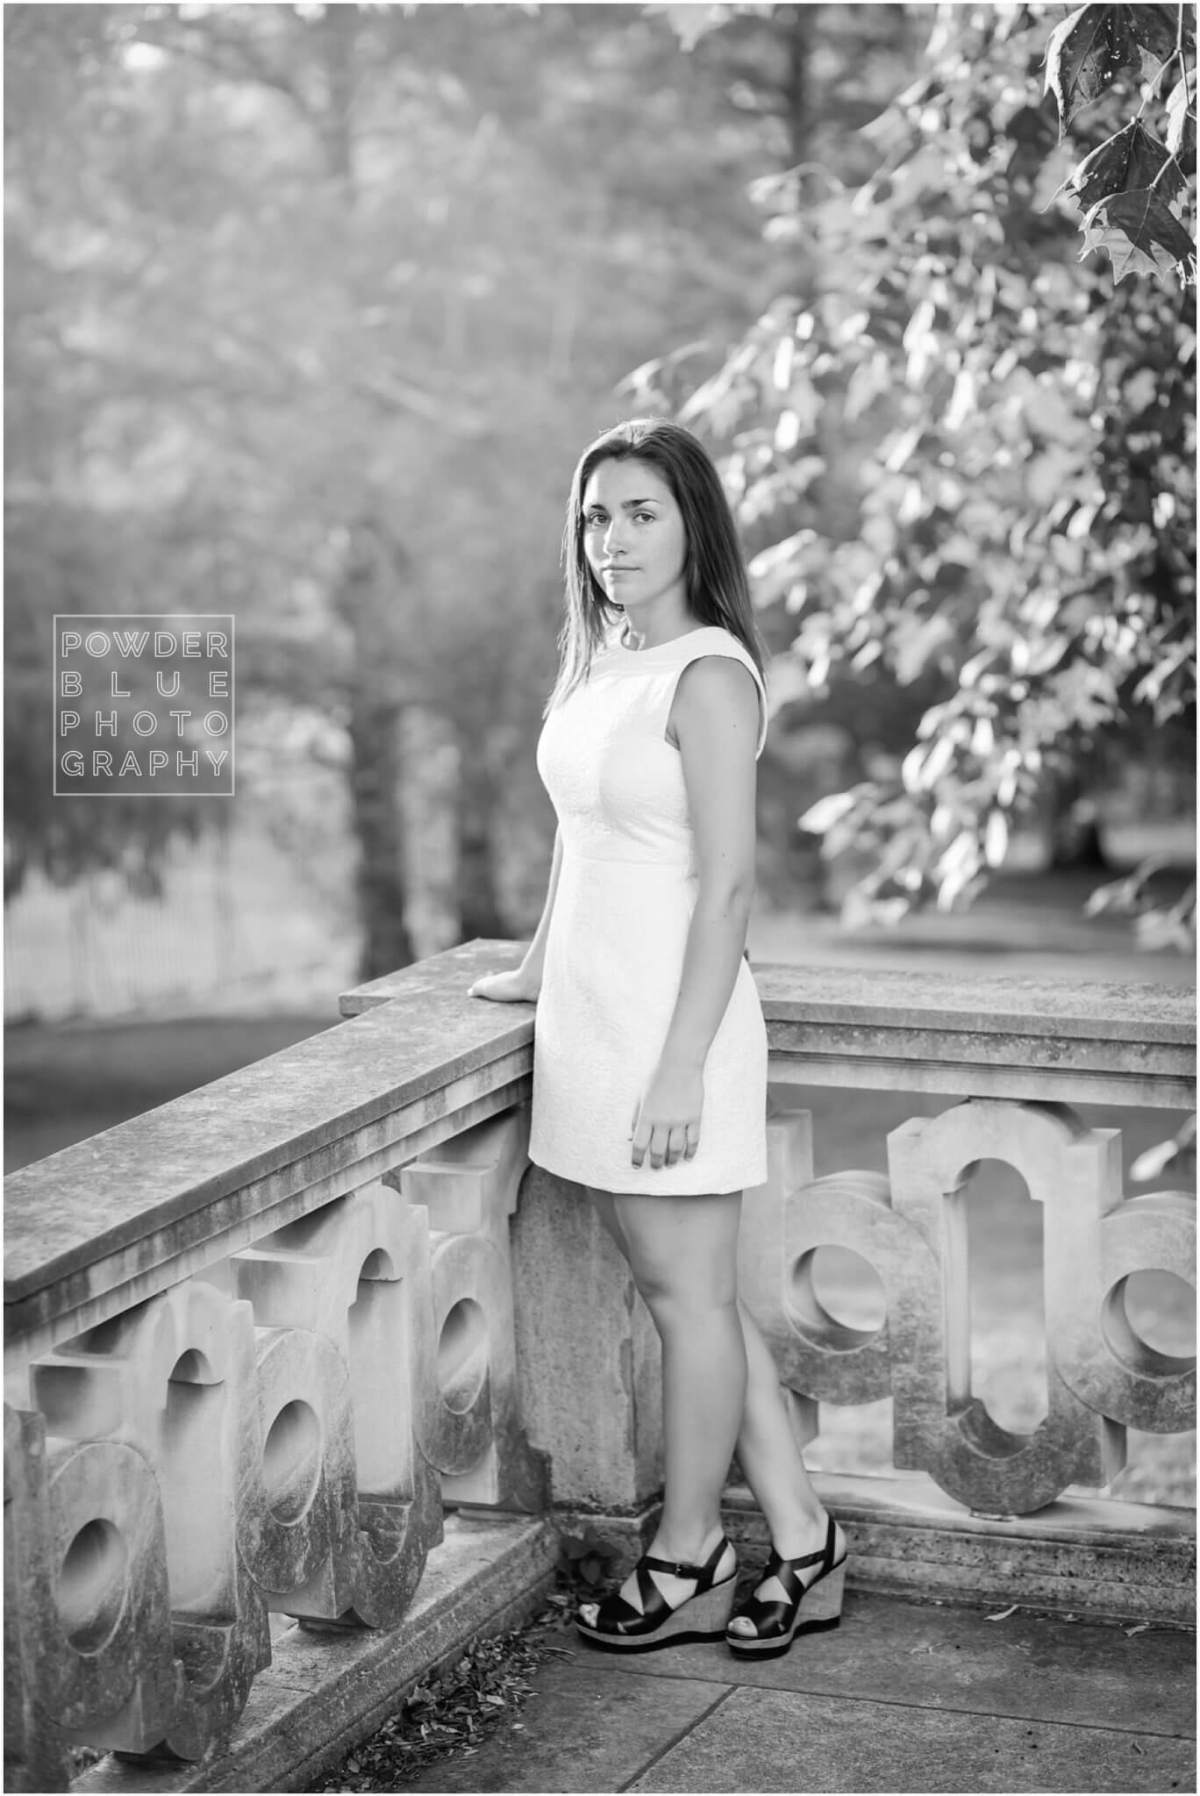 pittsburgh senior photography session at mellon park in pittsburgh black and white